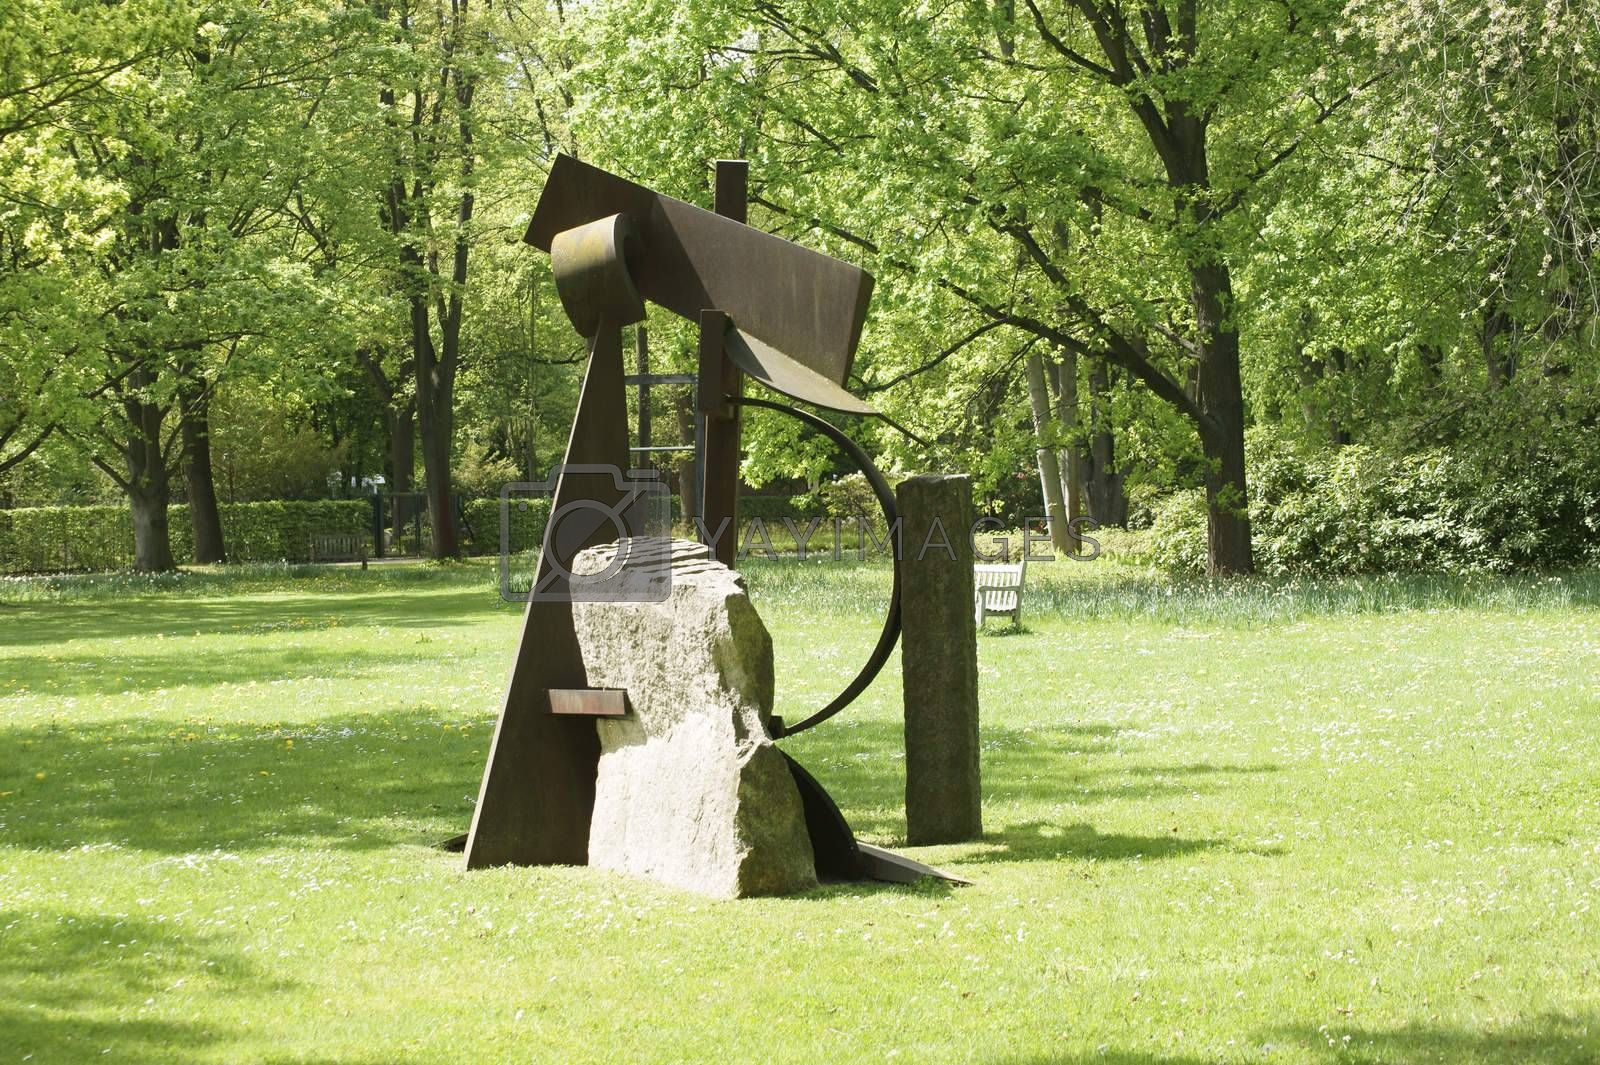 Berlin, Germany - May 06, 2015: A modern sculpture by an unknown artist stands on a meadow area of the park Britz Garden on May 06, 2015 in Berlin.